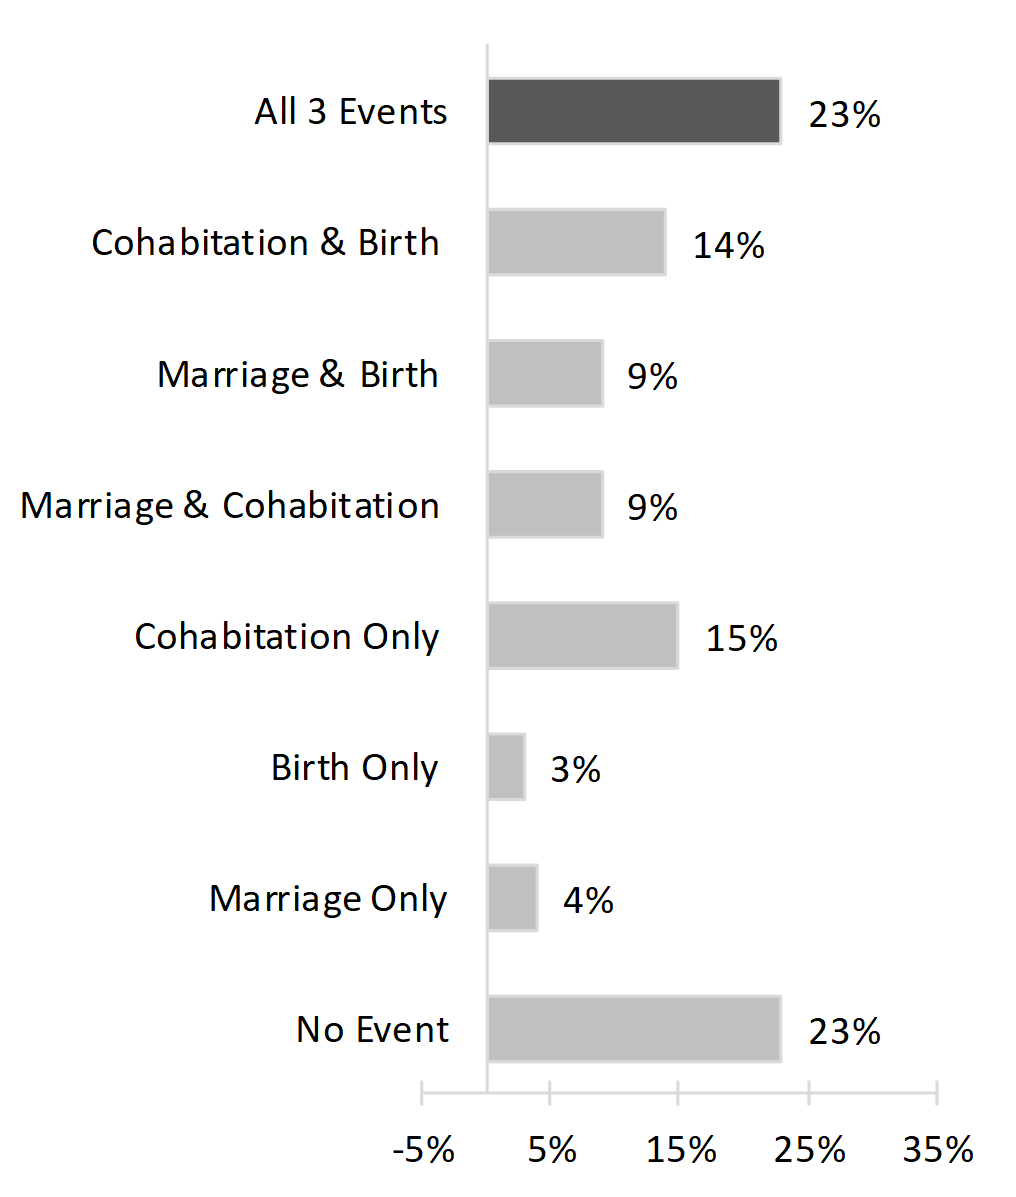 horizontal bar chart in shades of grey showing Figure 1. Distribution of Number and Types of Family Formation Events Experienced Before Age 30